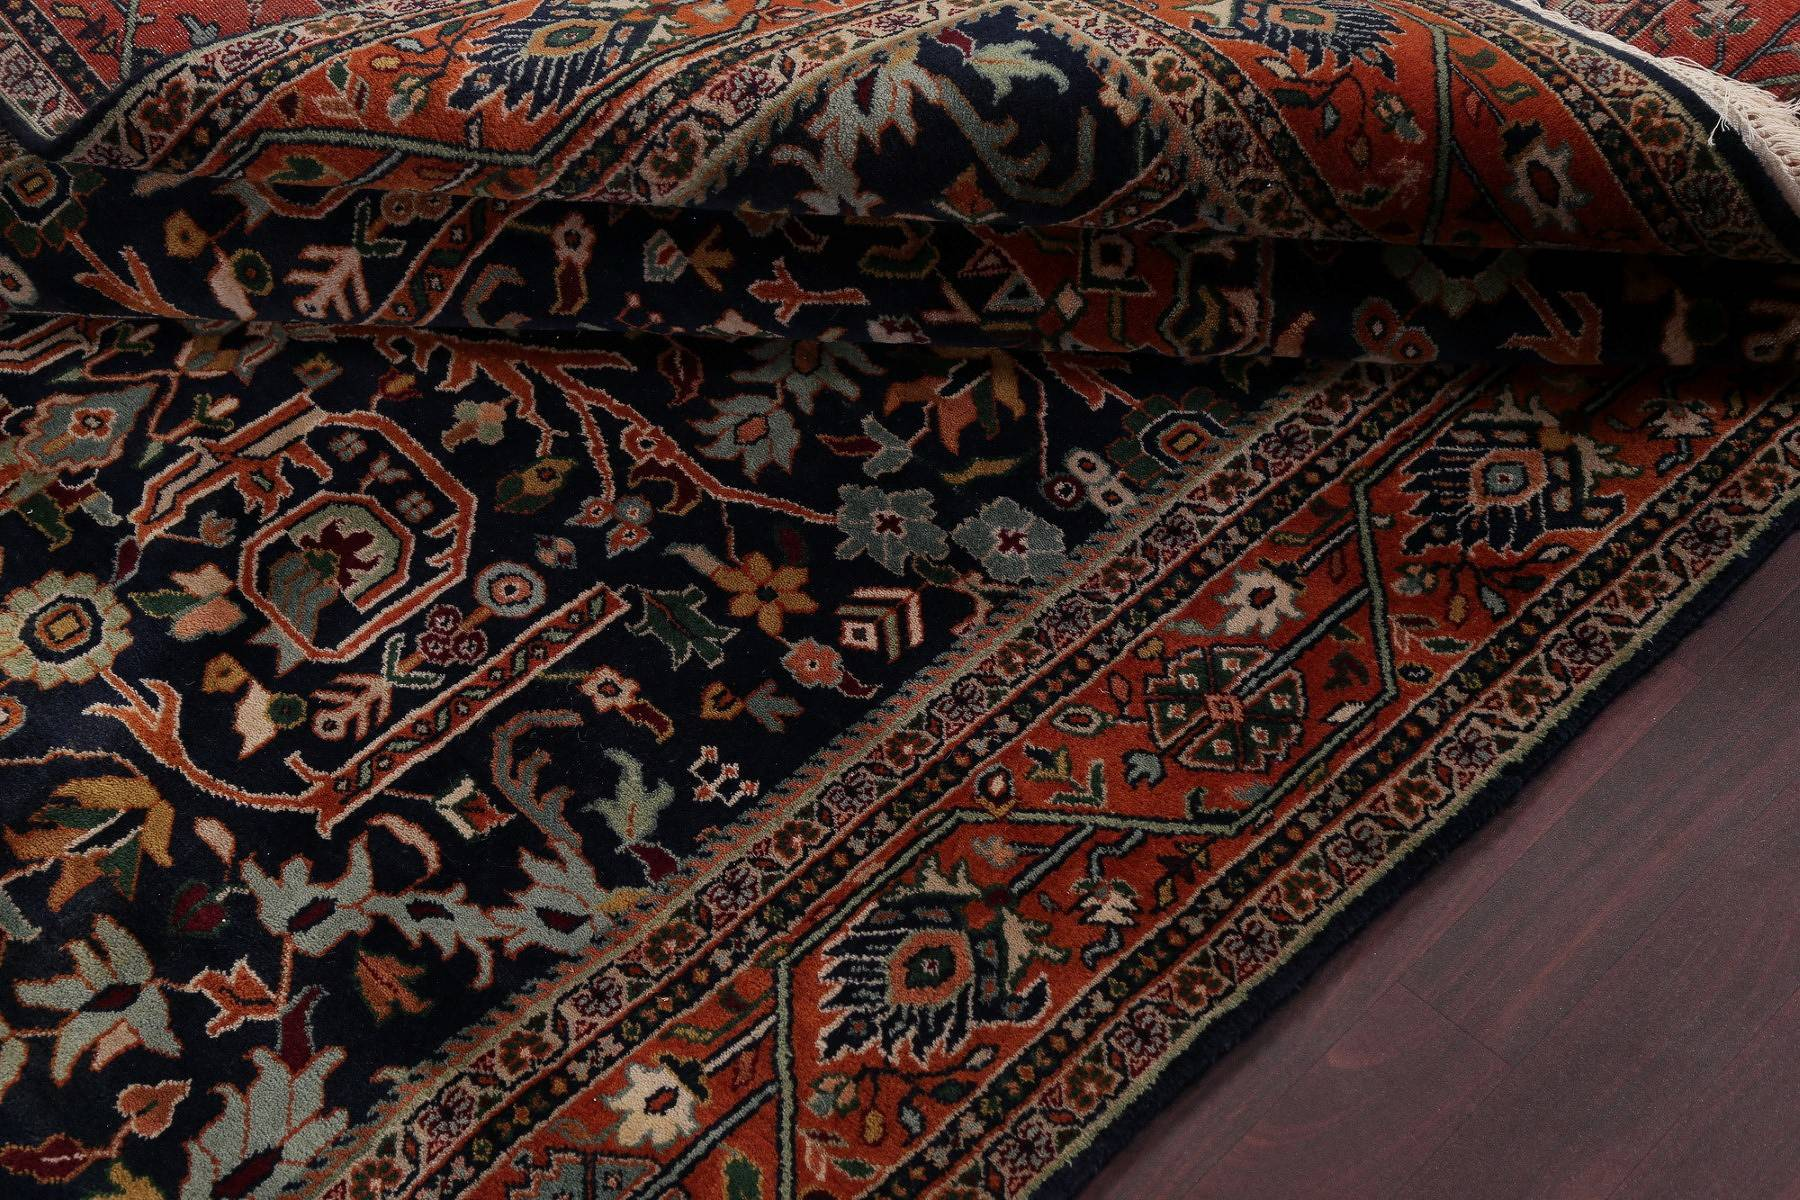 All-Over Floral Black Sarouk Indian Oriental Hand-Knotted Area Rug Wool 6x9